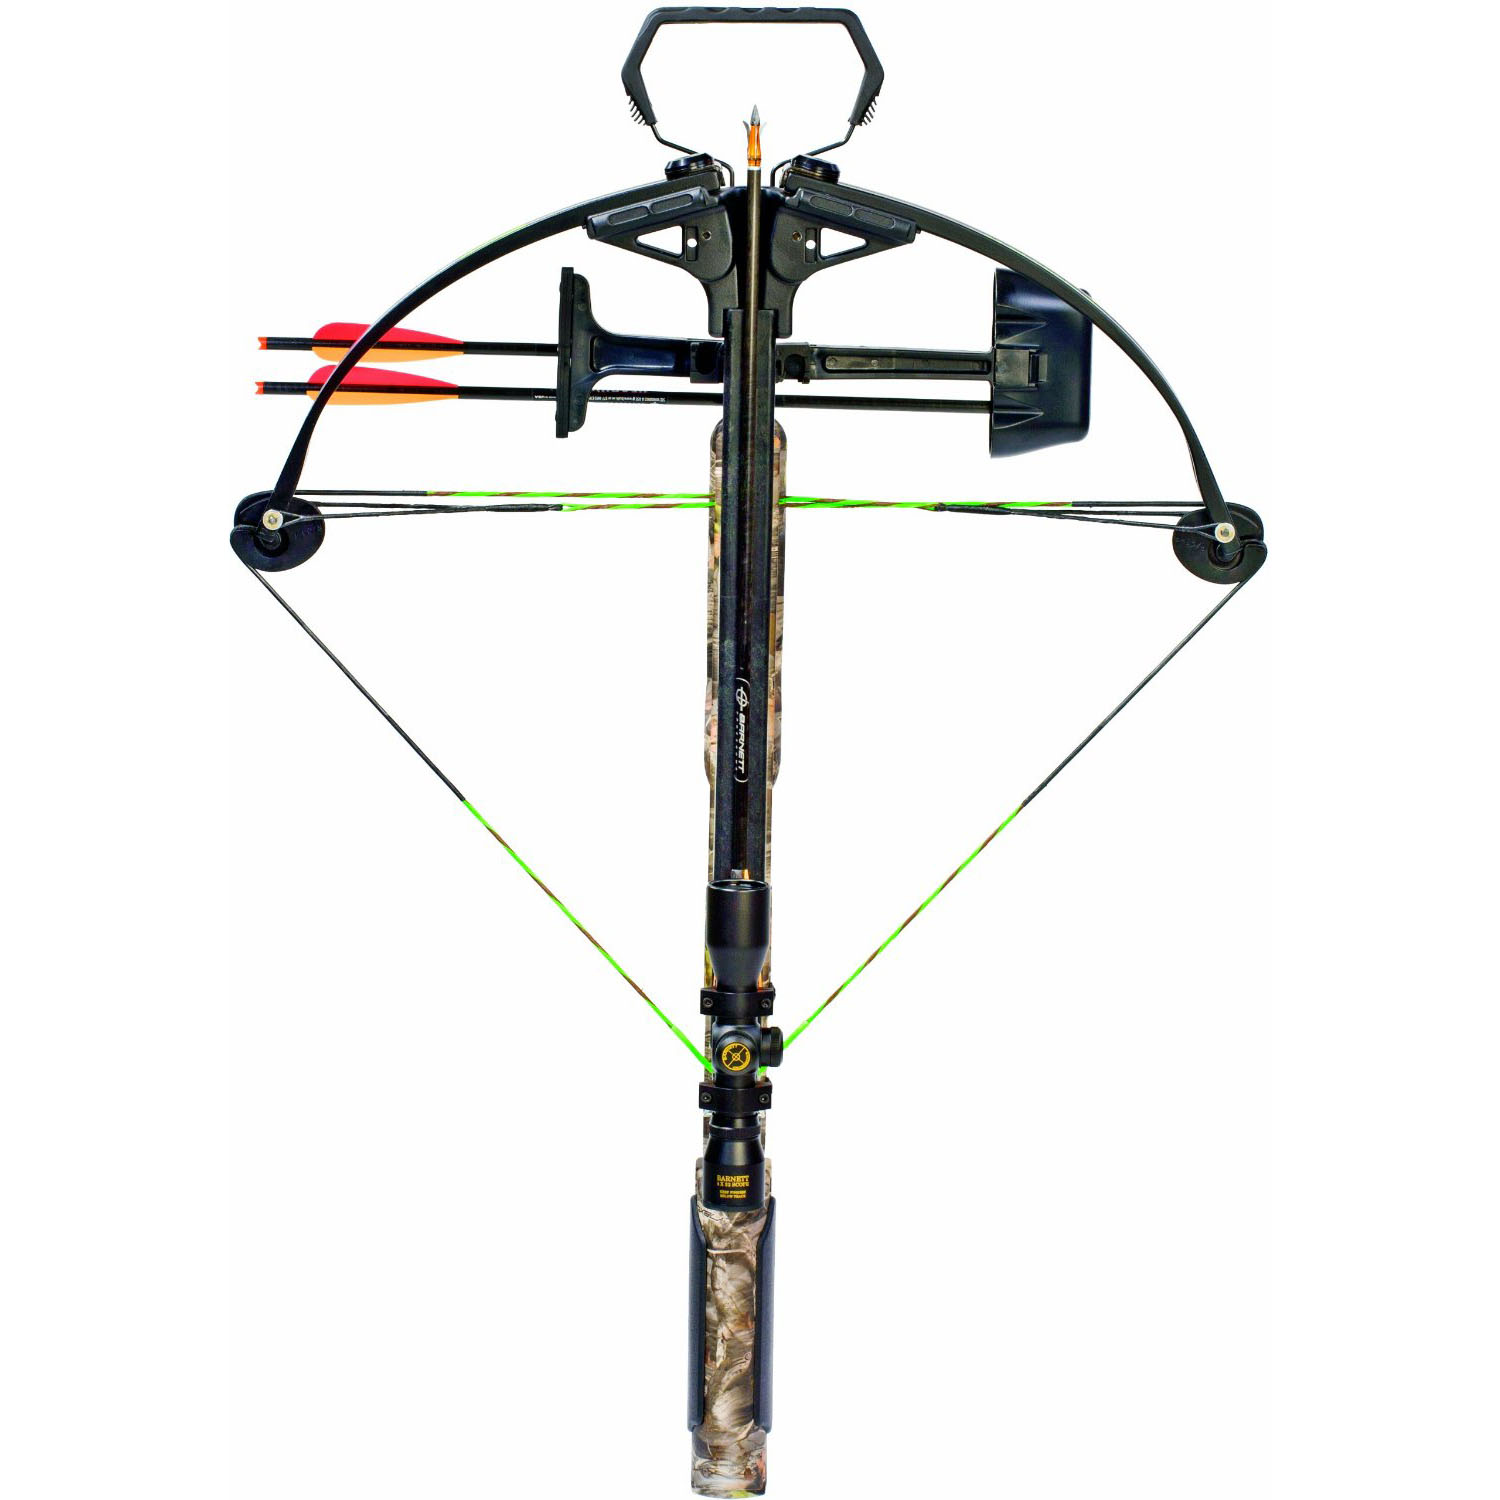 Barnett Quad 400 Review - a Compound Crossbow Inspection